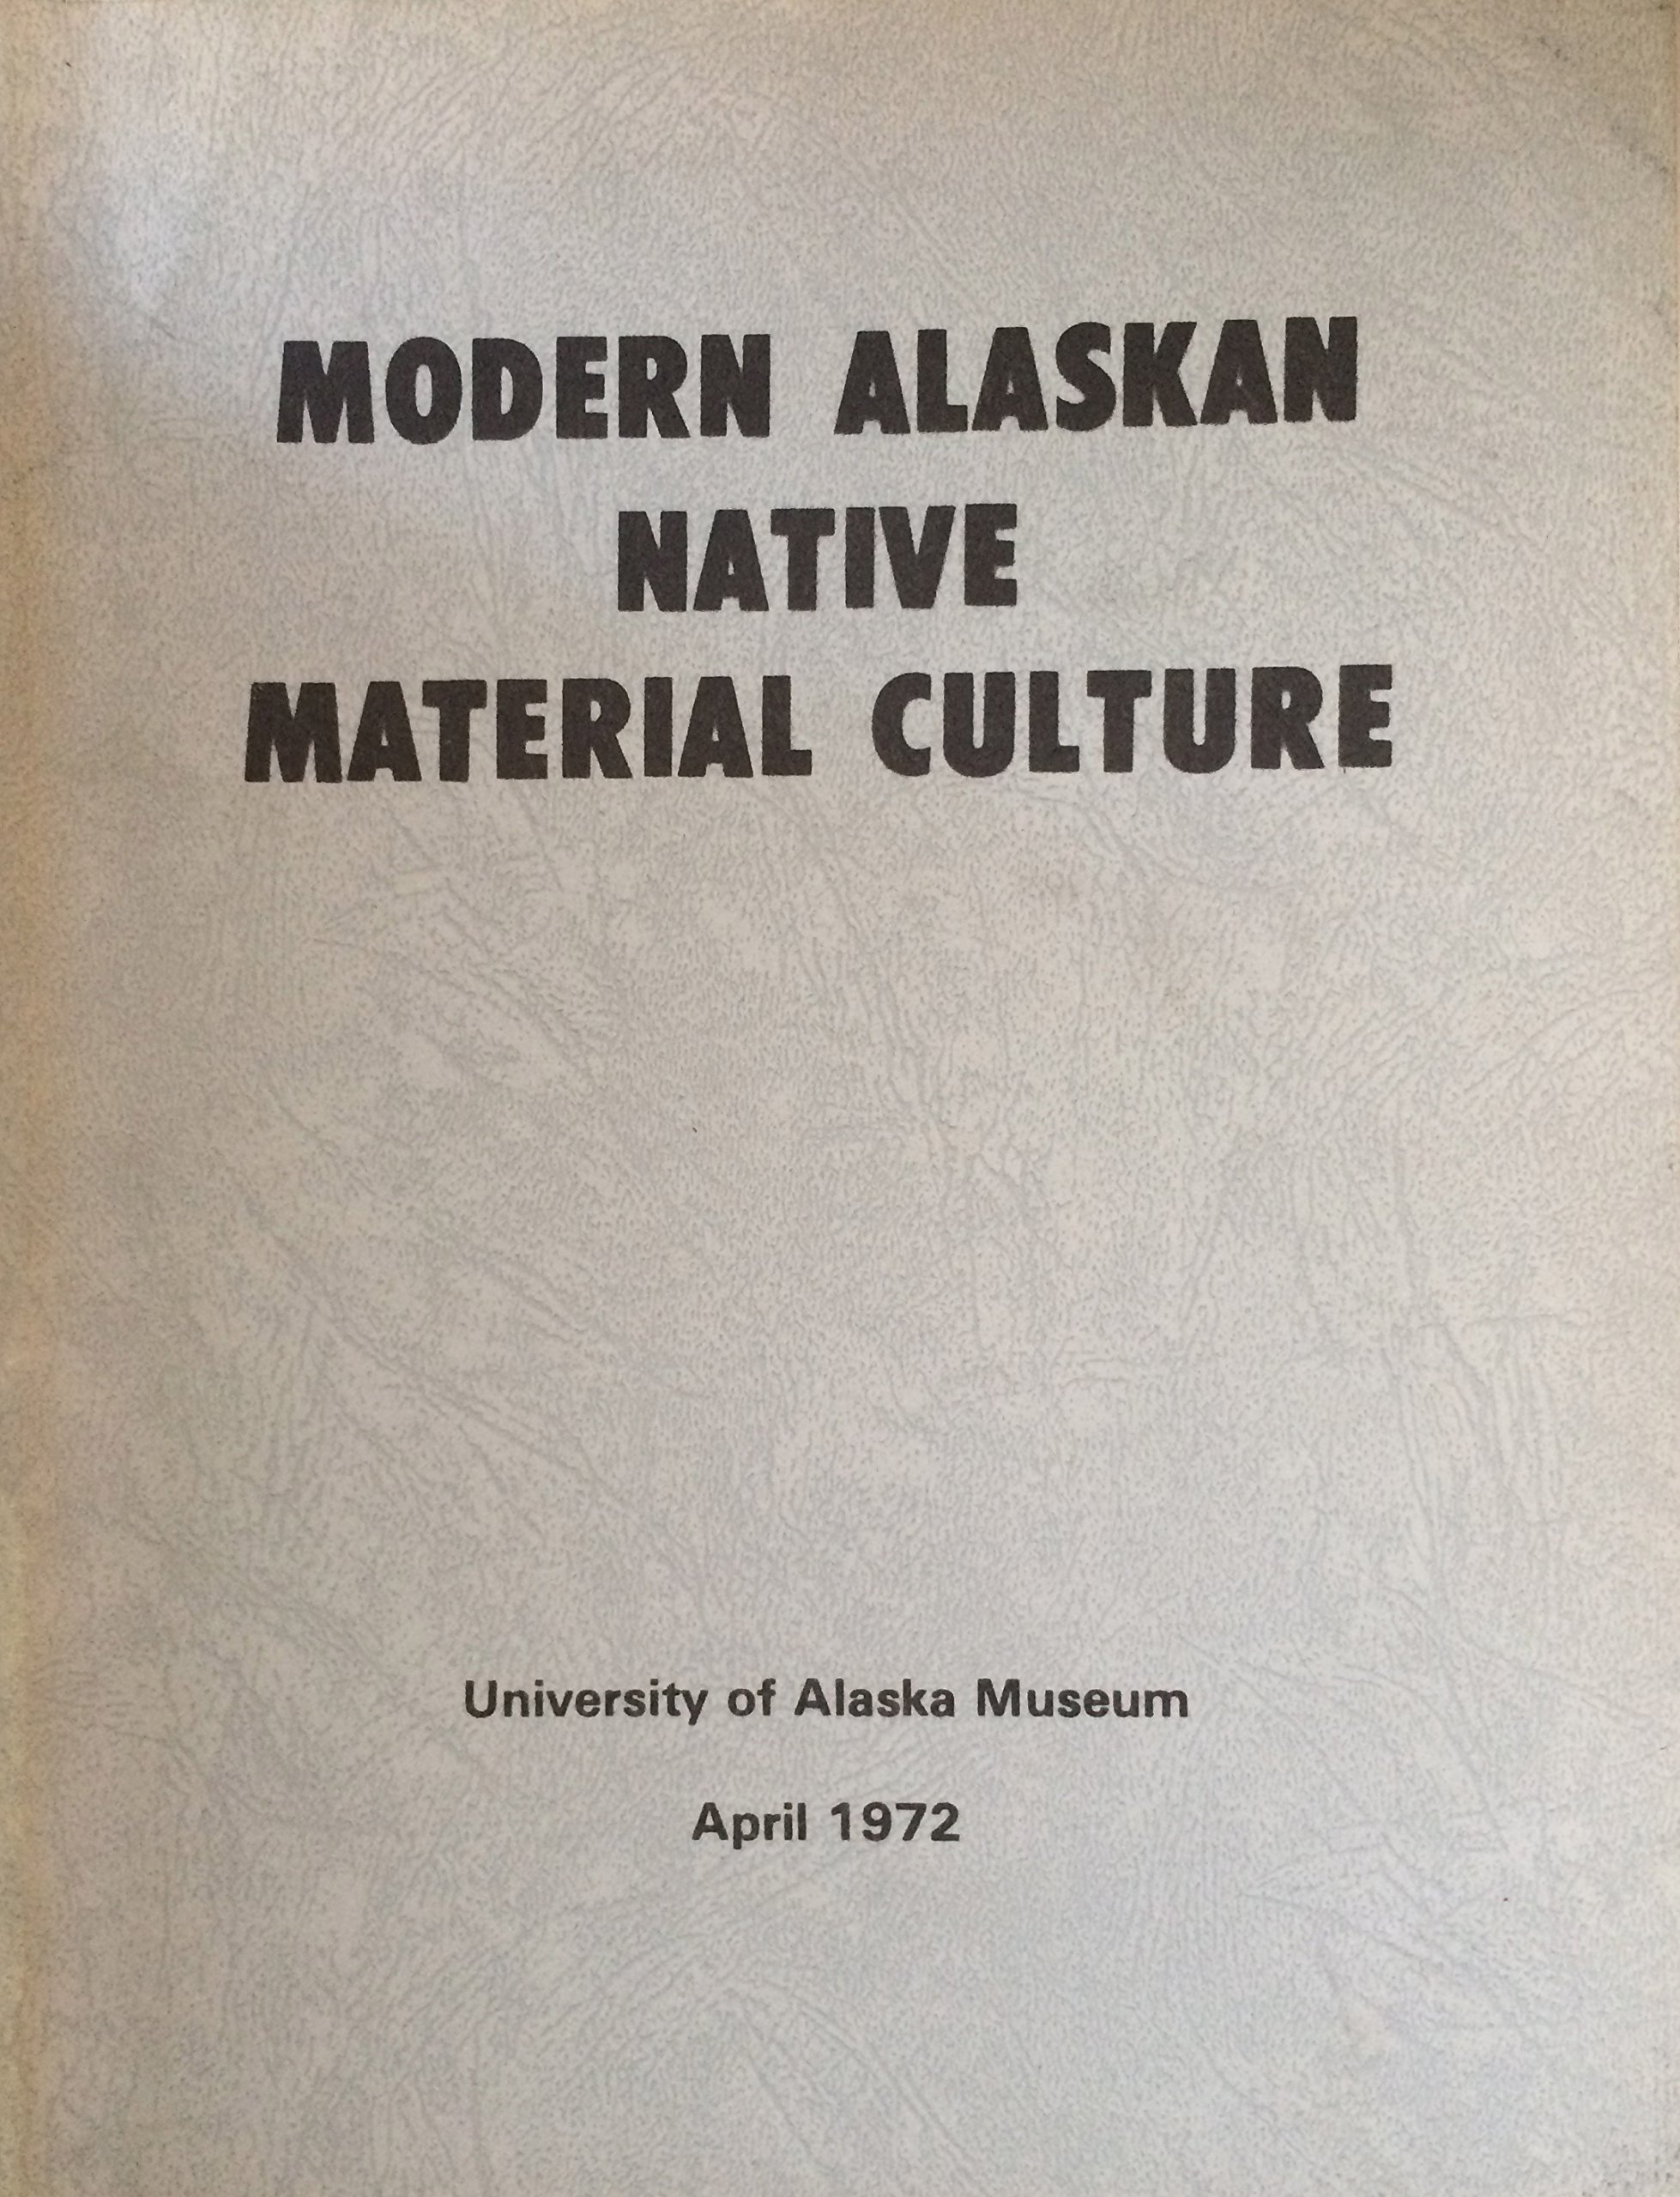 Modern Alaskan Native Material Culture